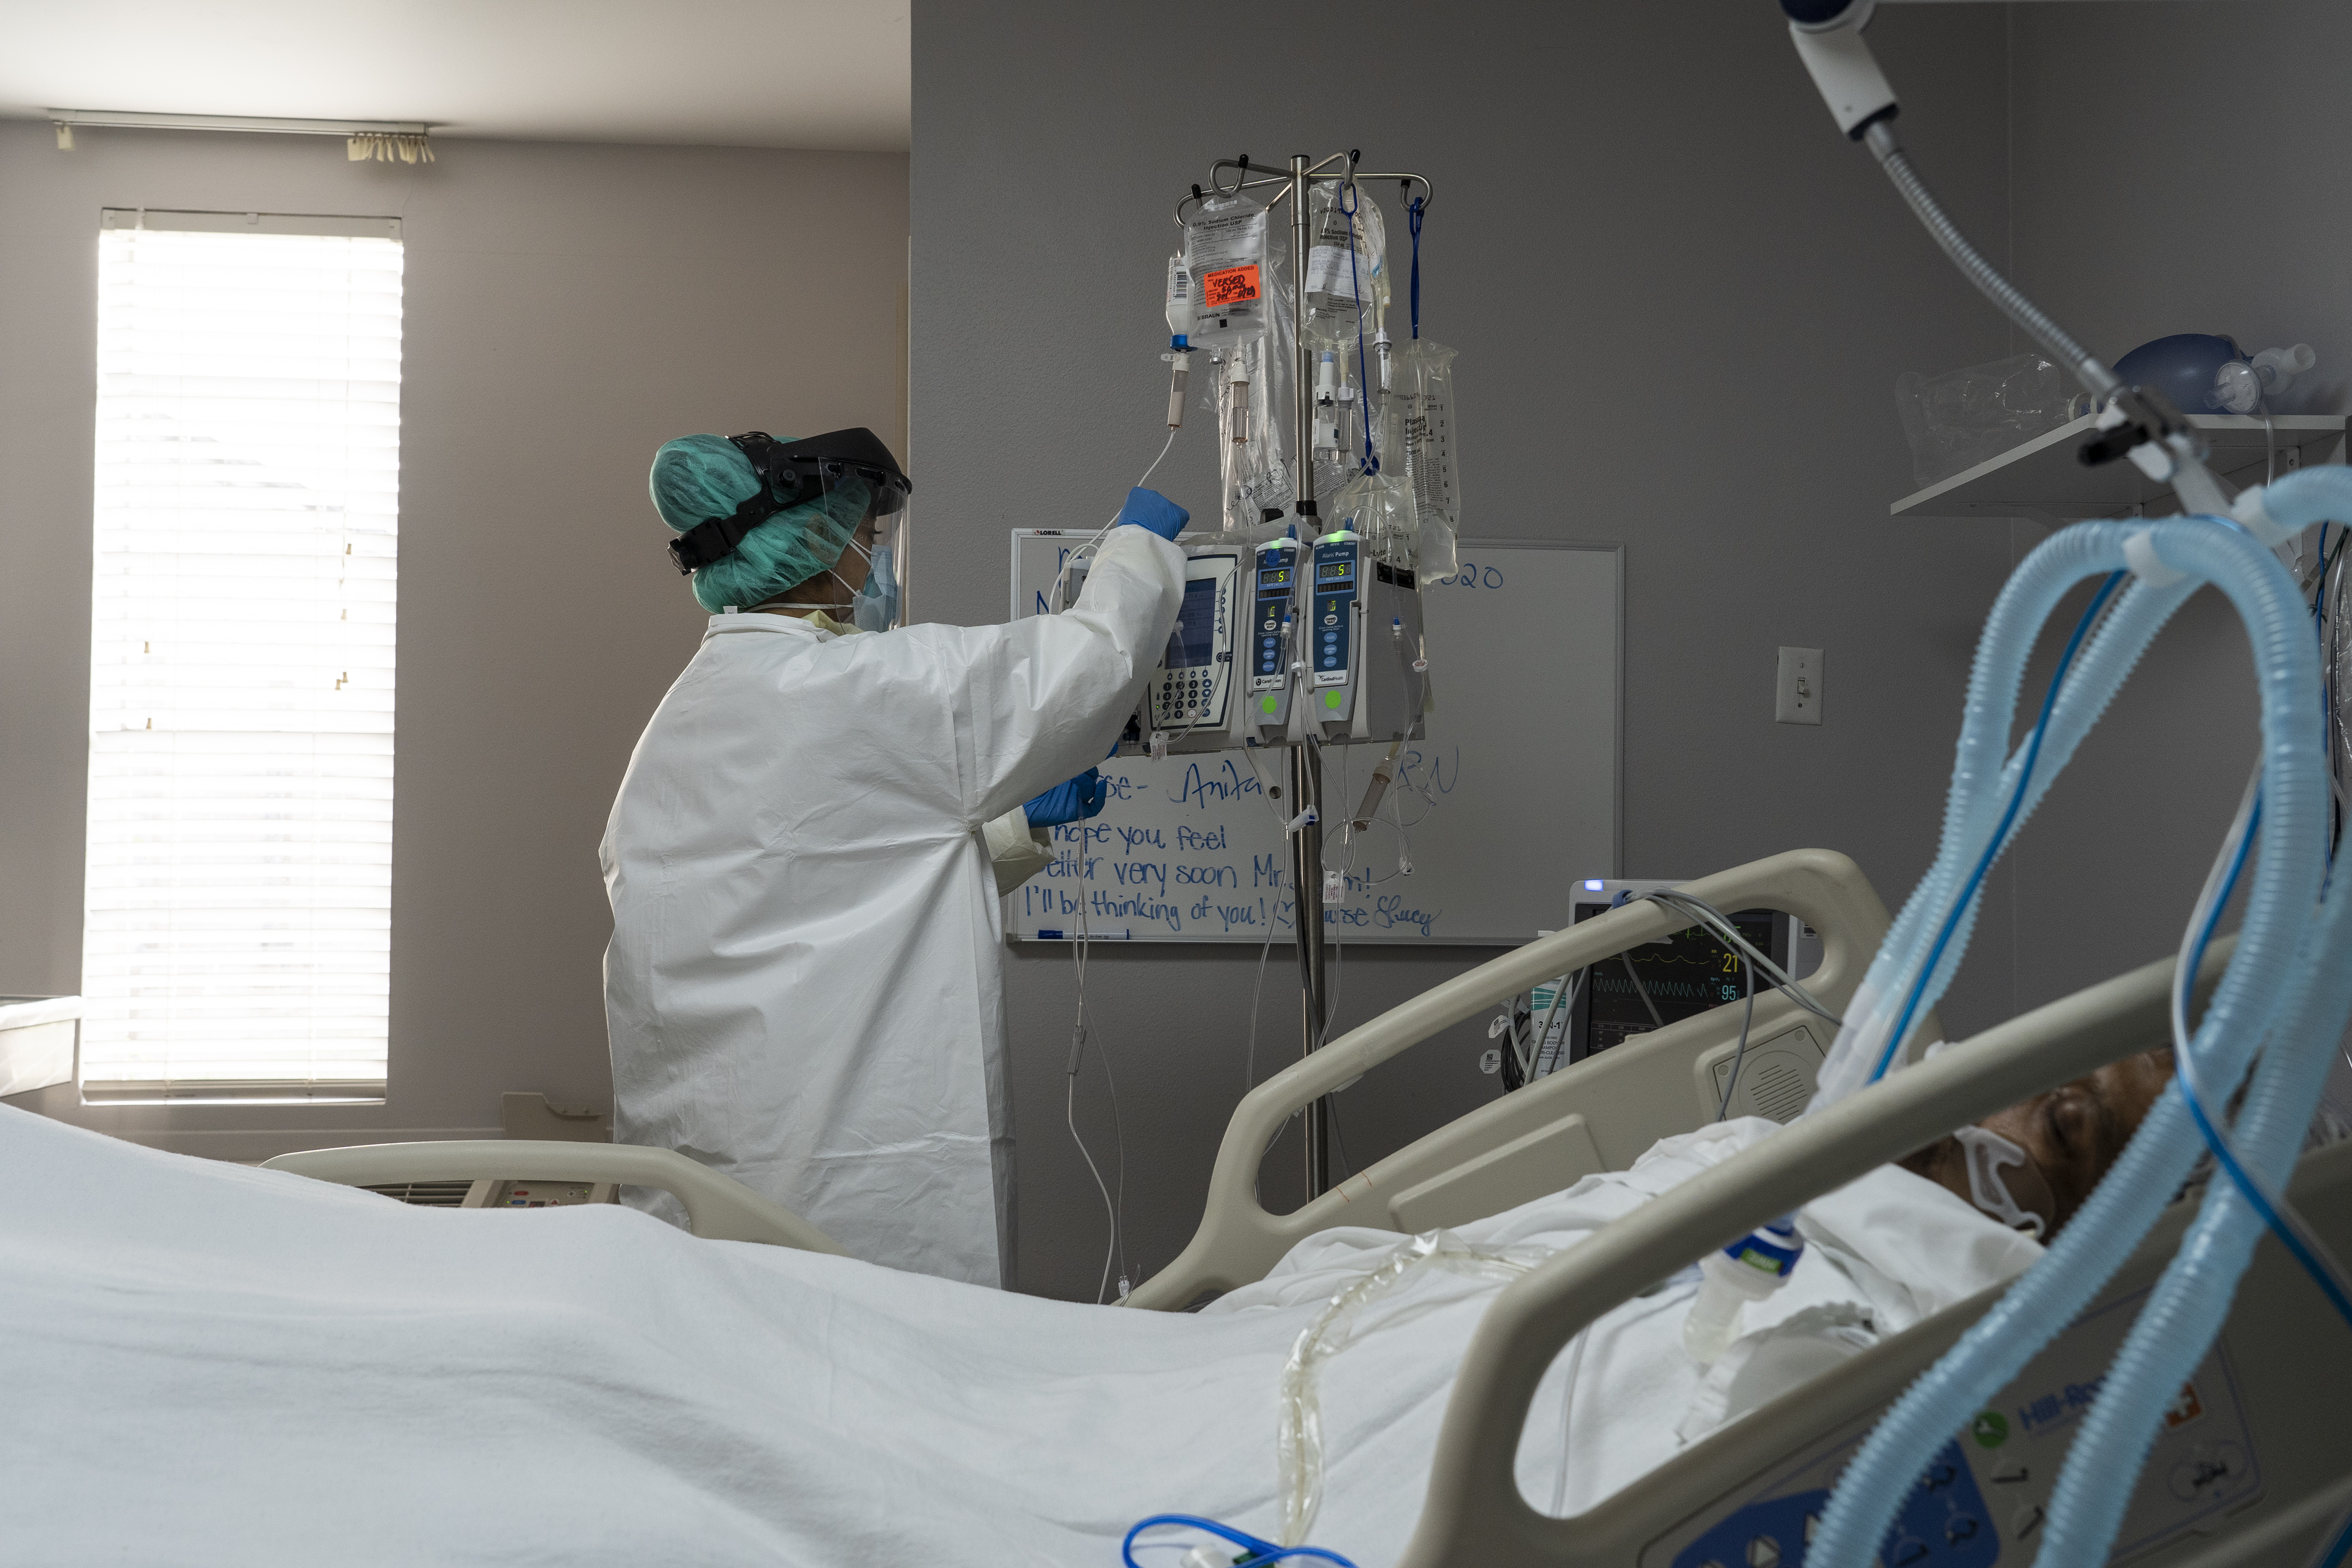 HOUSTON, TX - JUNE 30: A member of the medical staff treats a patient in the Covid-19 intensive care unit at the United Memorial Medical Center on June 30, 2020 in Houston, Texas. Covid-19 cases and hospitalizations have spiked since Texas reopened, pushing intensive-care wards to full capacity and sparking concerns about a surge in fatalities as the virus spreads. (Photo by Go Nakamura/Getty Images)